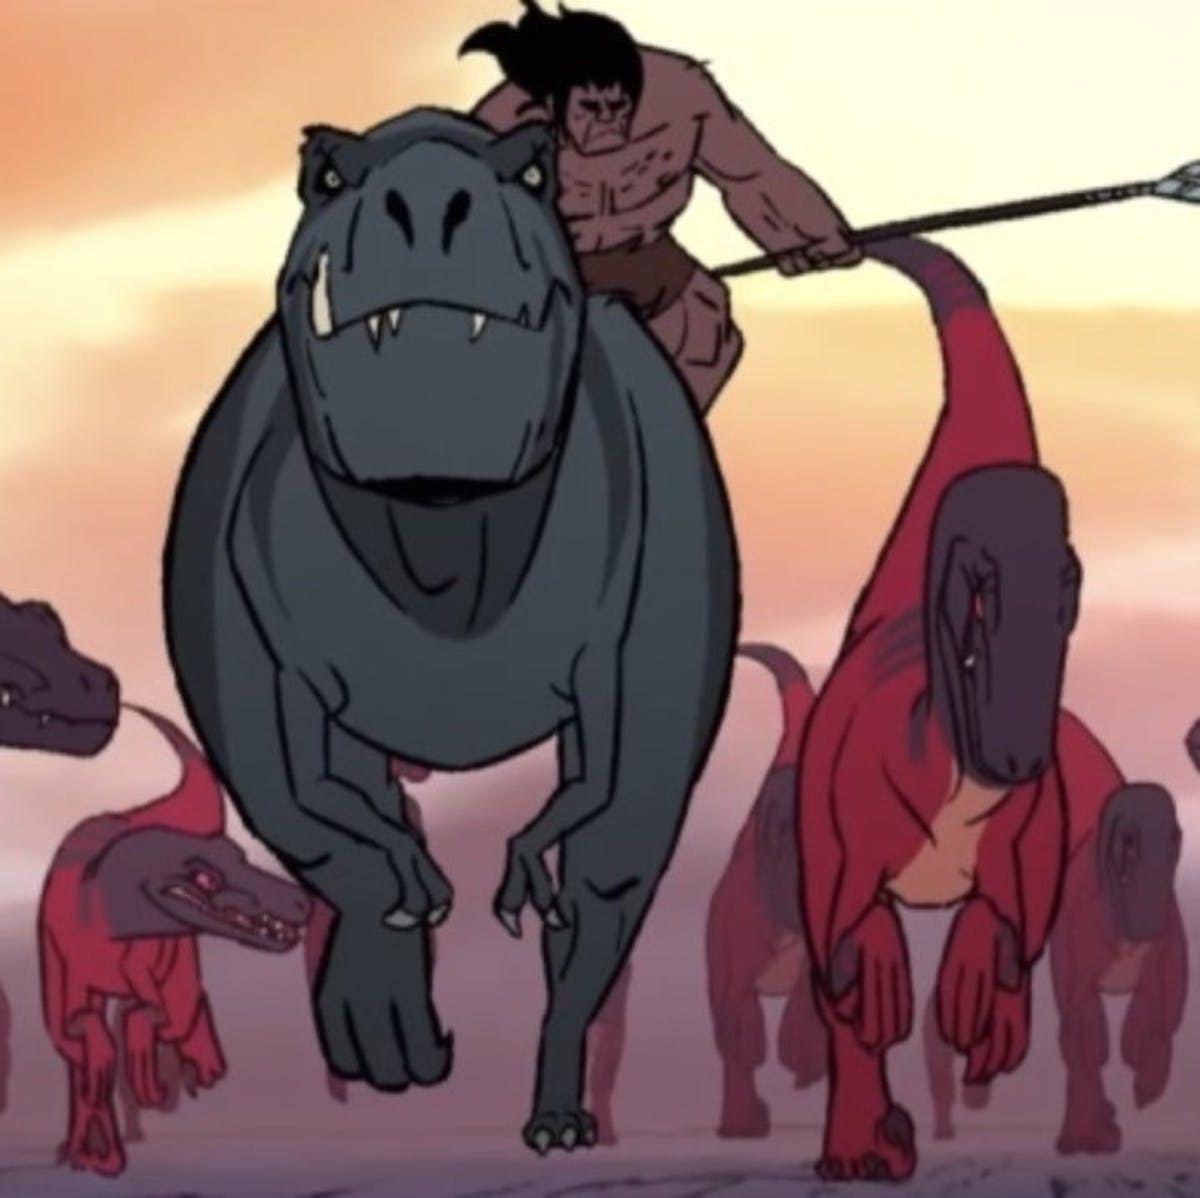 'Primal' review: Genndy Tartakovsky's new show somehow tops 'Samurai Jack'